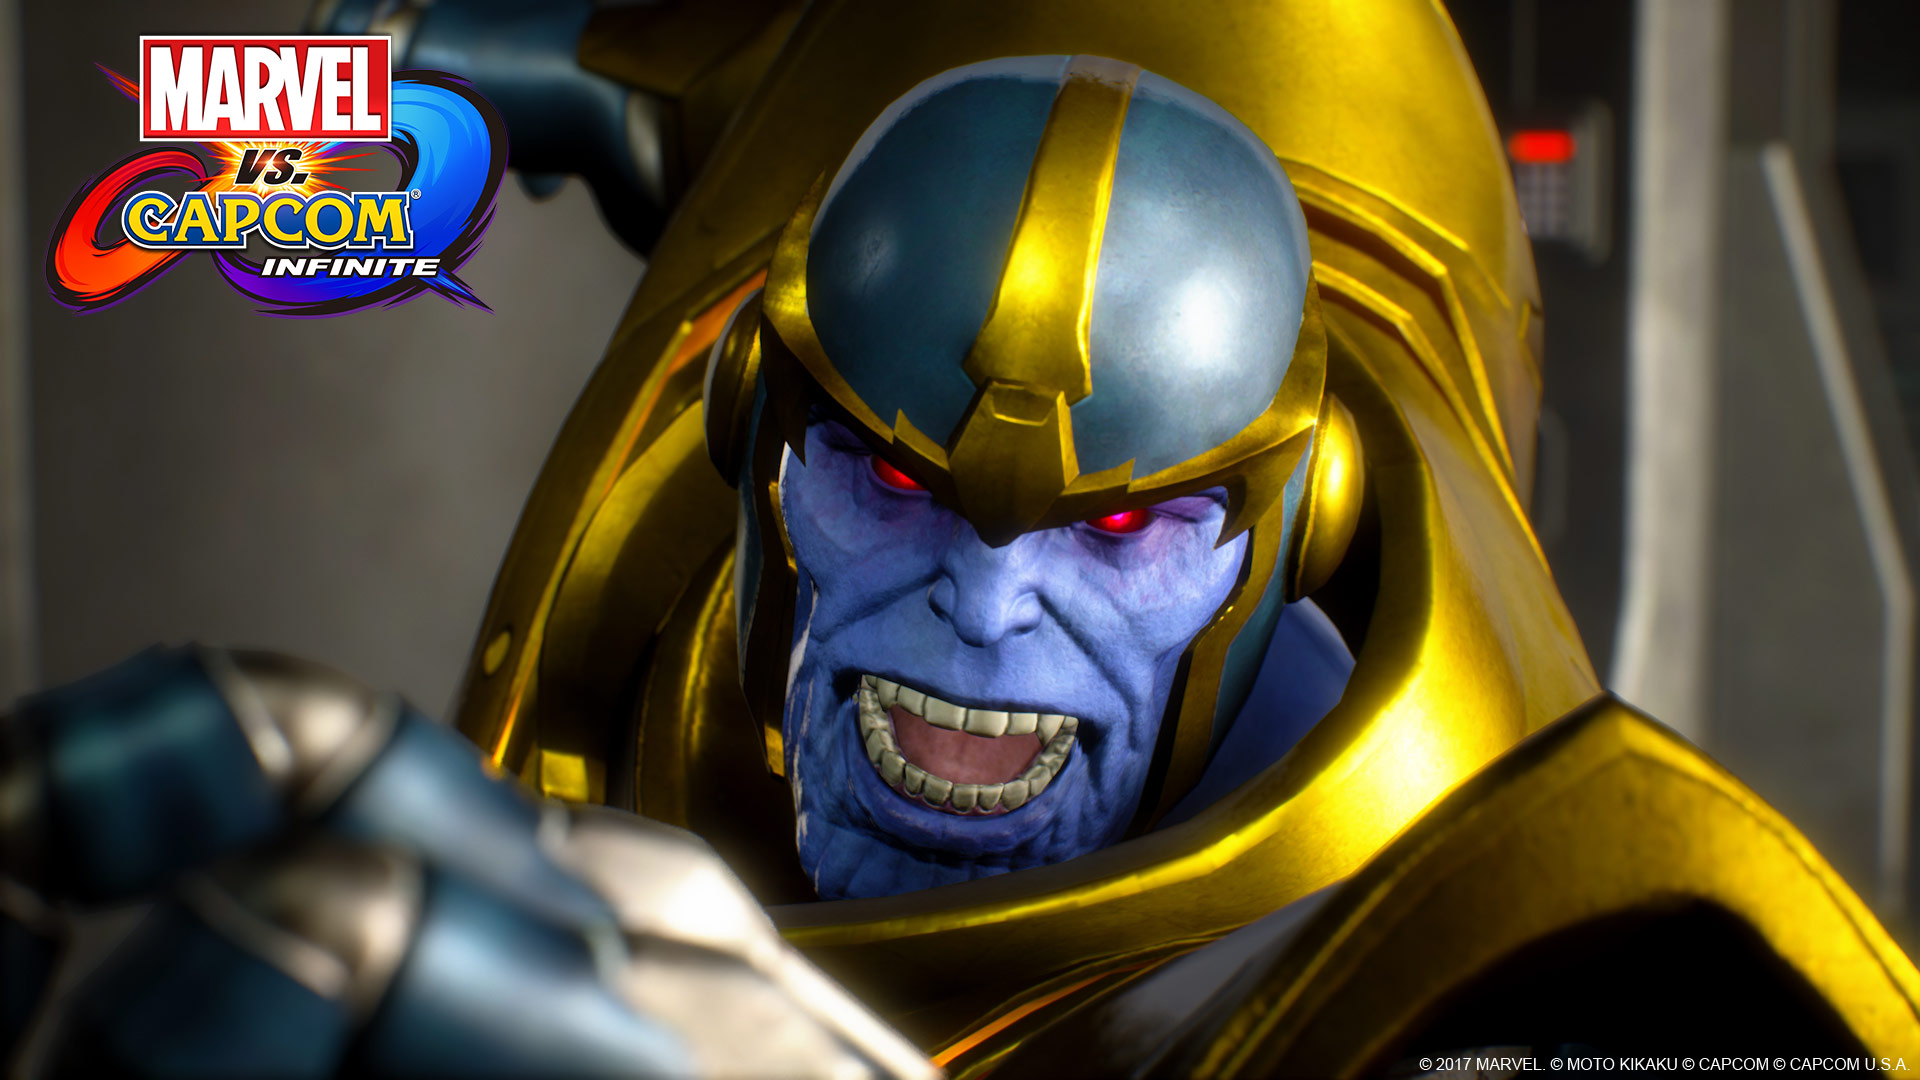 Marvel vs. Capcom: Infinite cover art and new character images from E3 2017 9 out of 26 image gallery